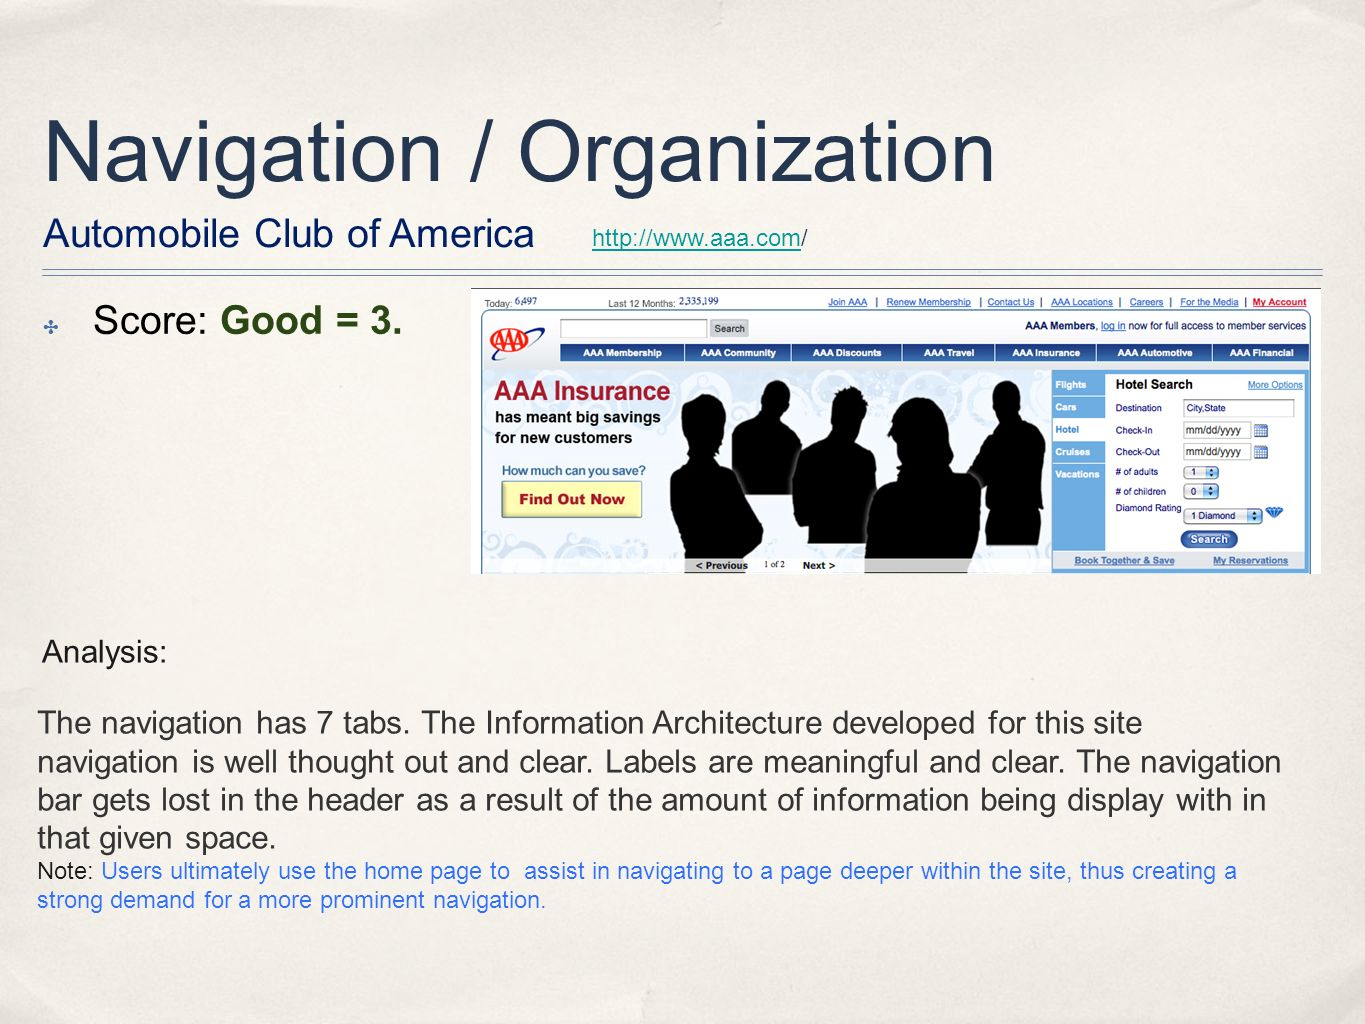 Navigation / Organization Score: Good = 3.